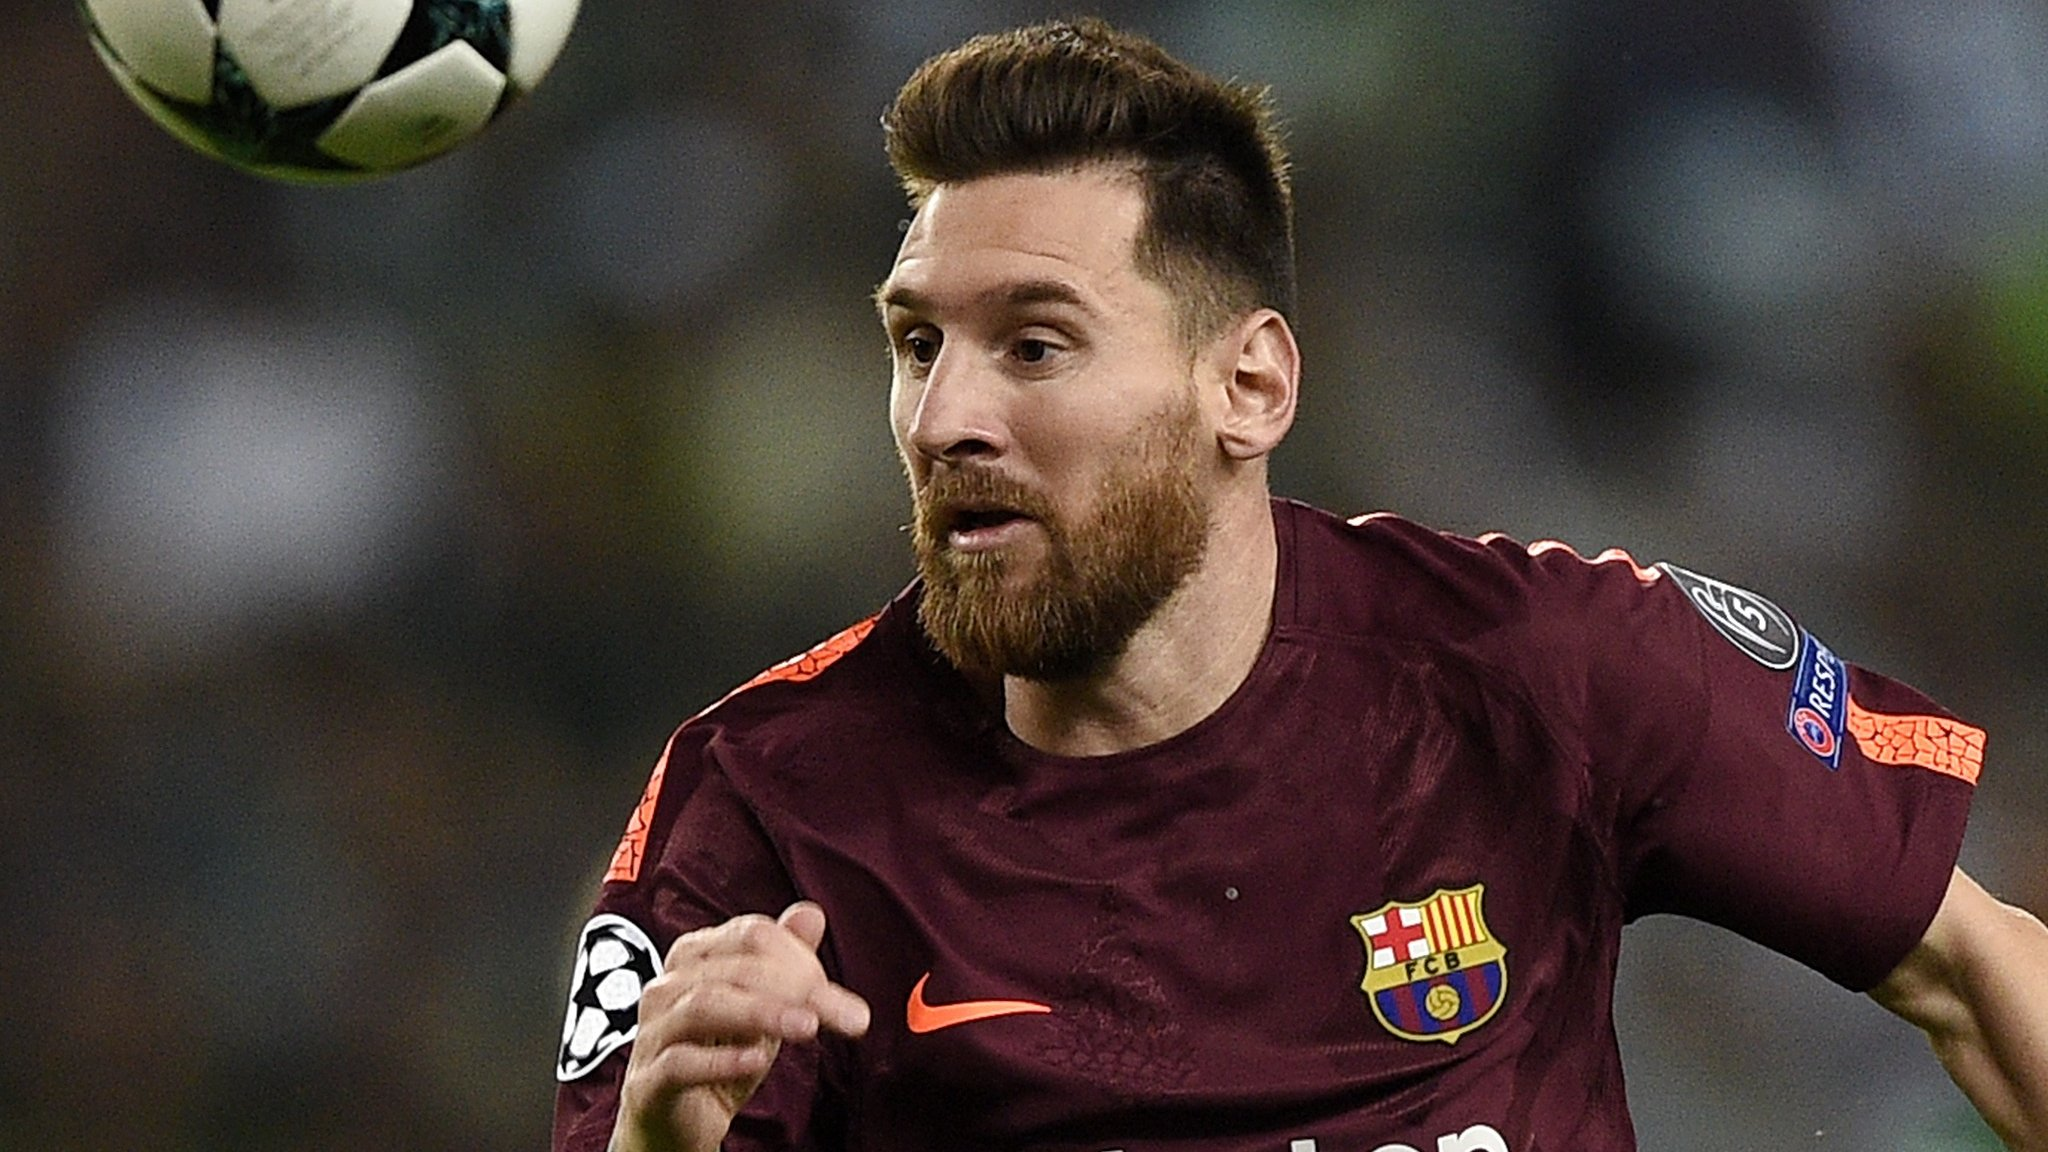 Messi on bench and Barca goalless again - but reach last 16